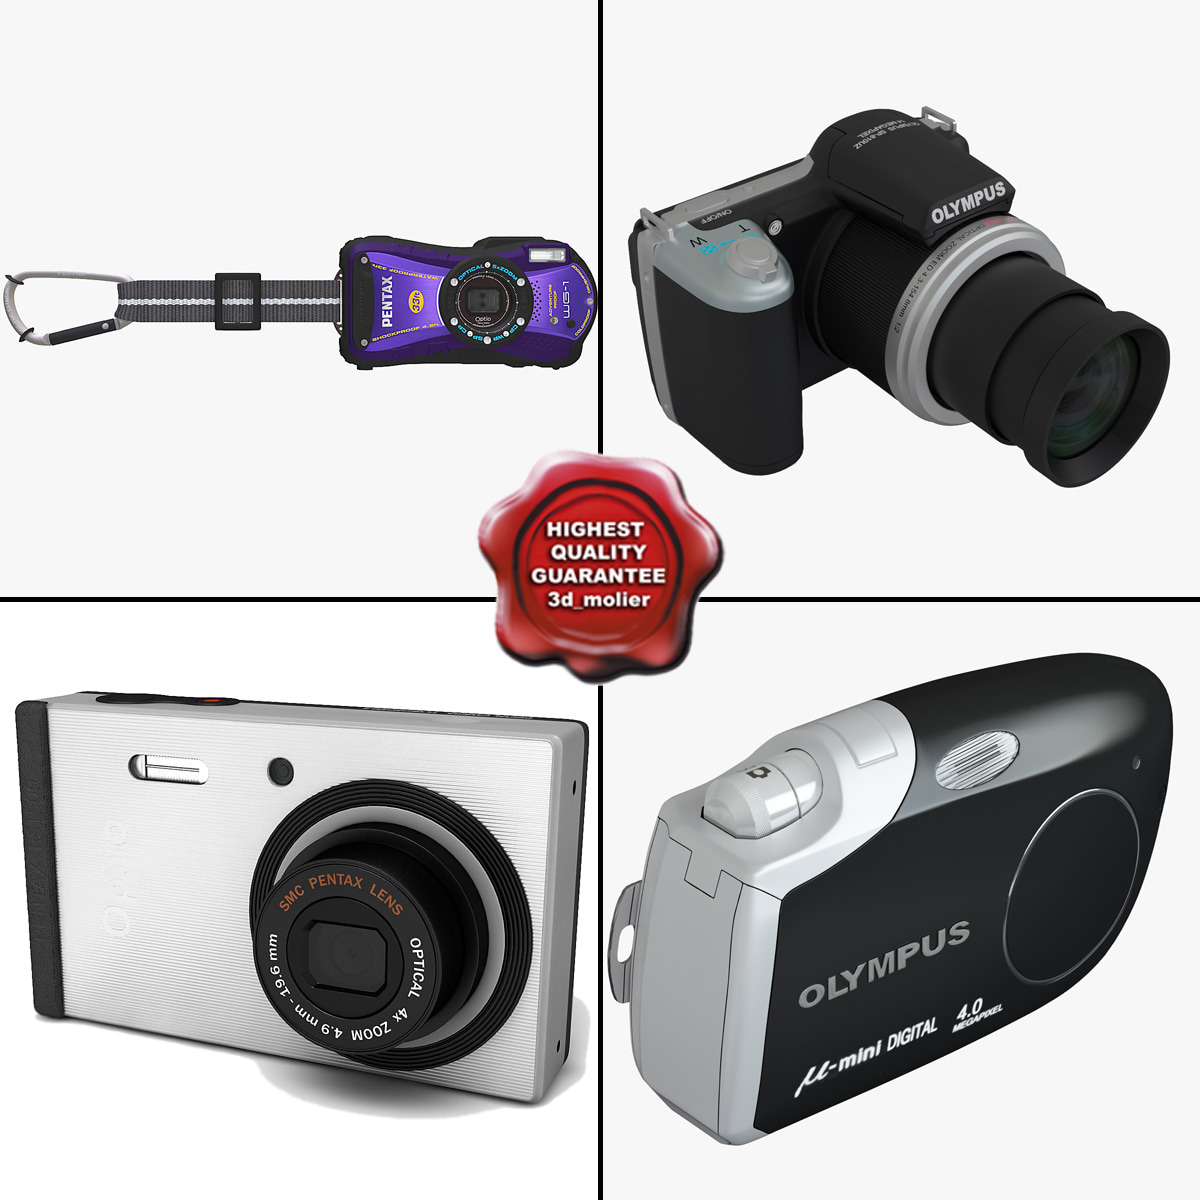 Digital_Cameras_Collection_V10_000.jpg